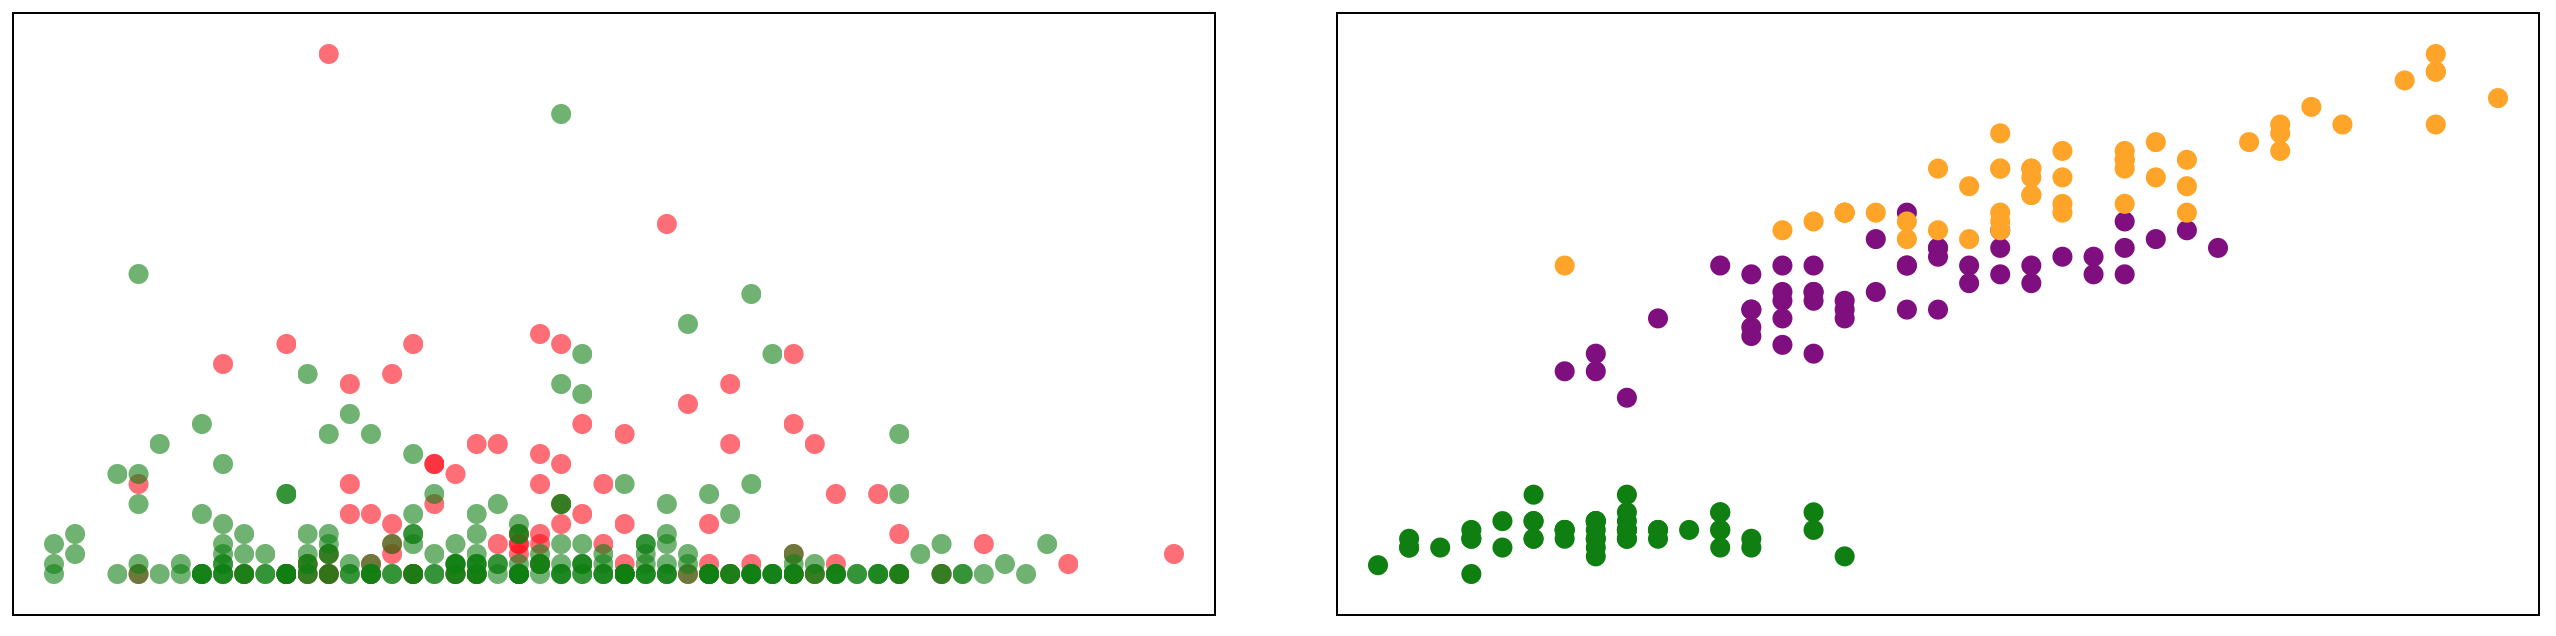 two scatter plots